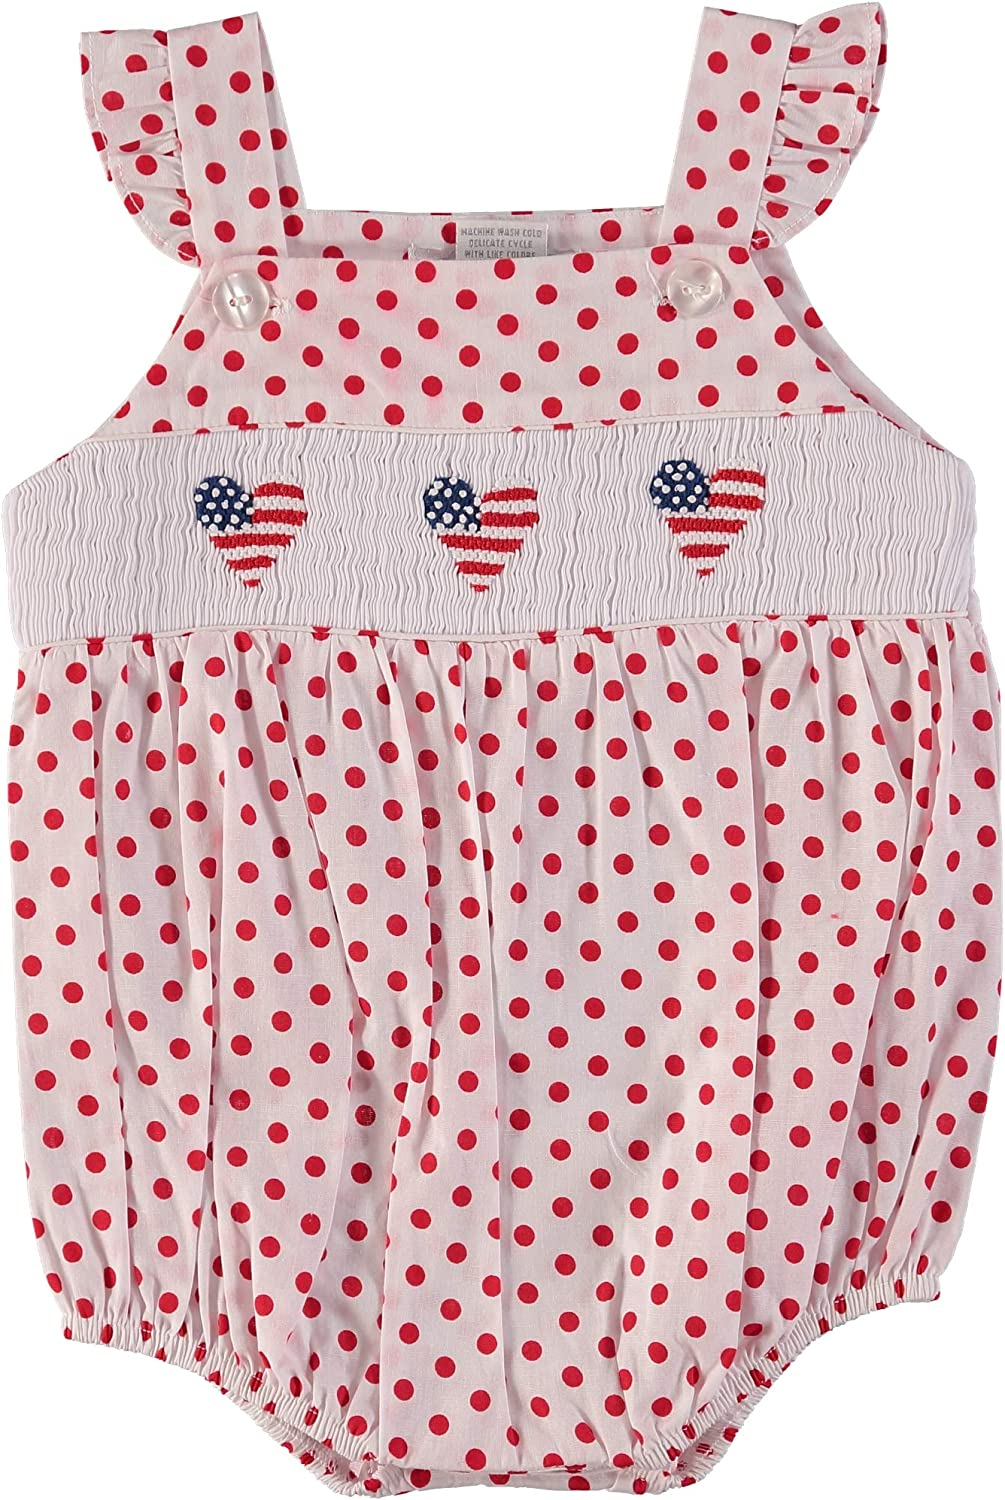 Baby Girl Bubble Hand Dallas Mall Smocked American Colorado Springs Mall Flags Polka on Dots Red